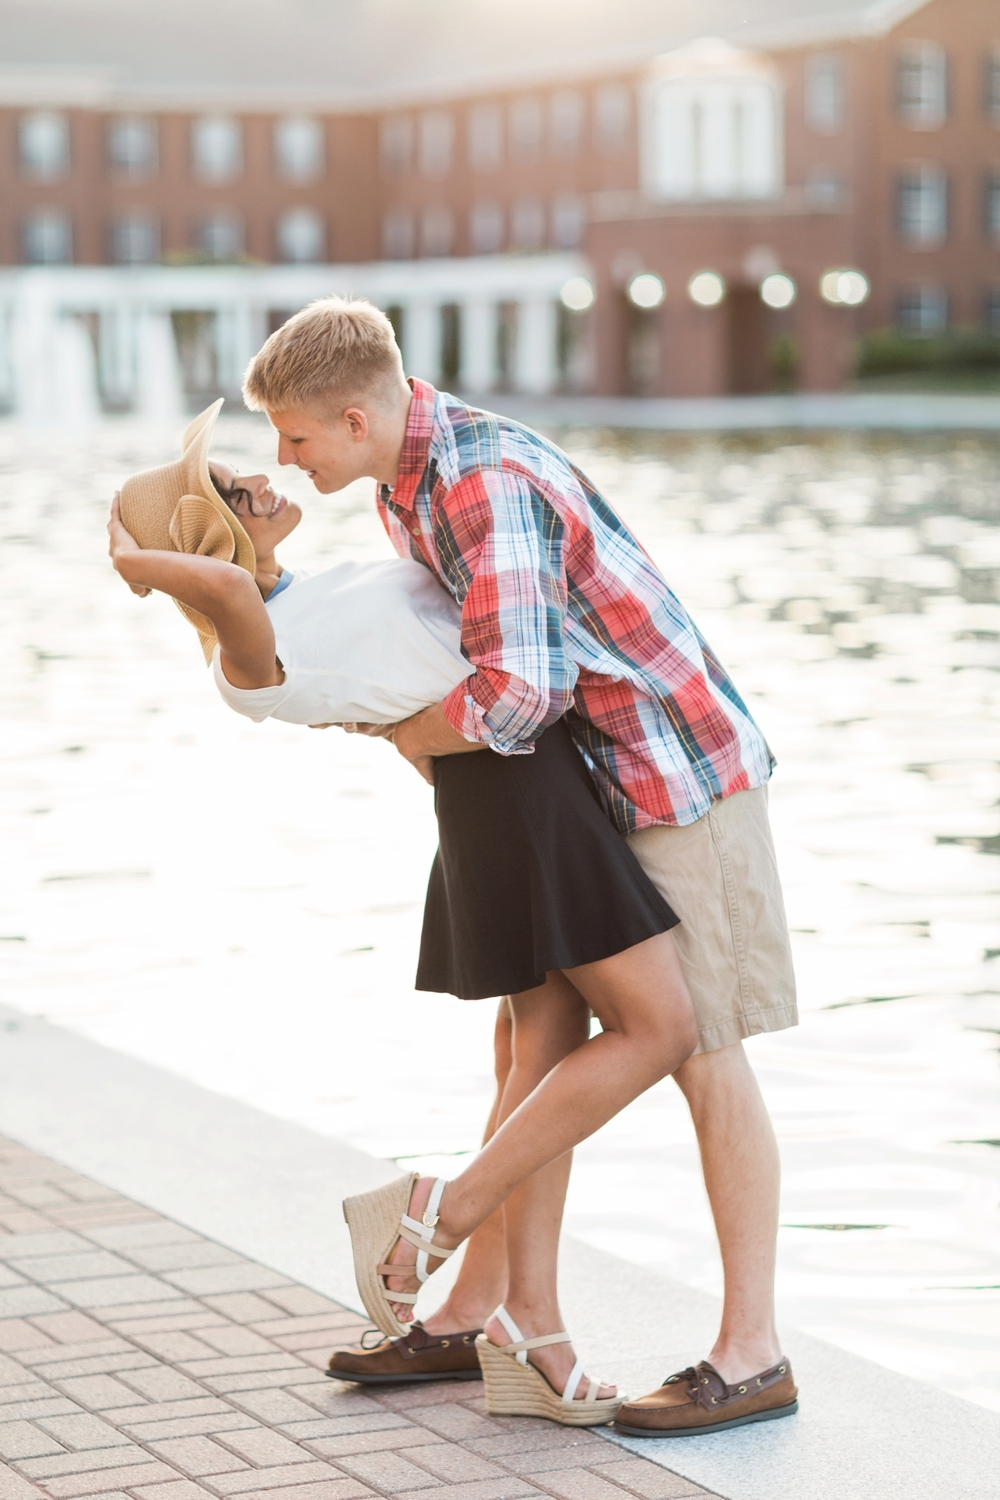 The_Palladium_Carmel_Indiana_Engagement_Photos_Chloe_Luka_Photography_7319.jpg